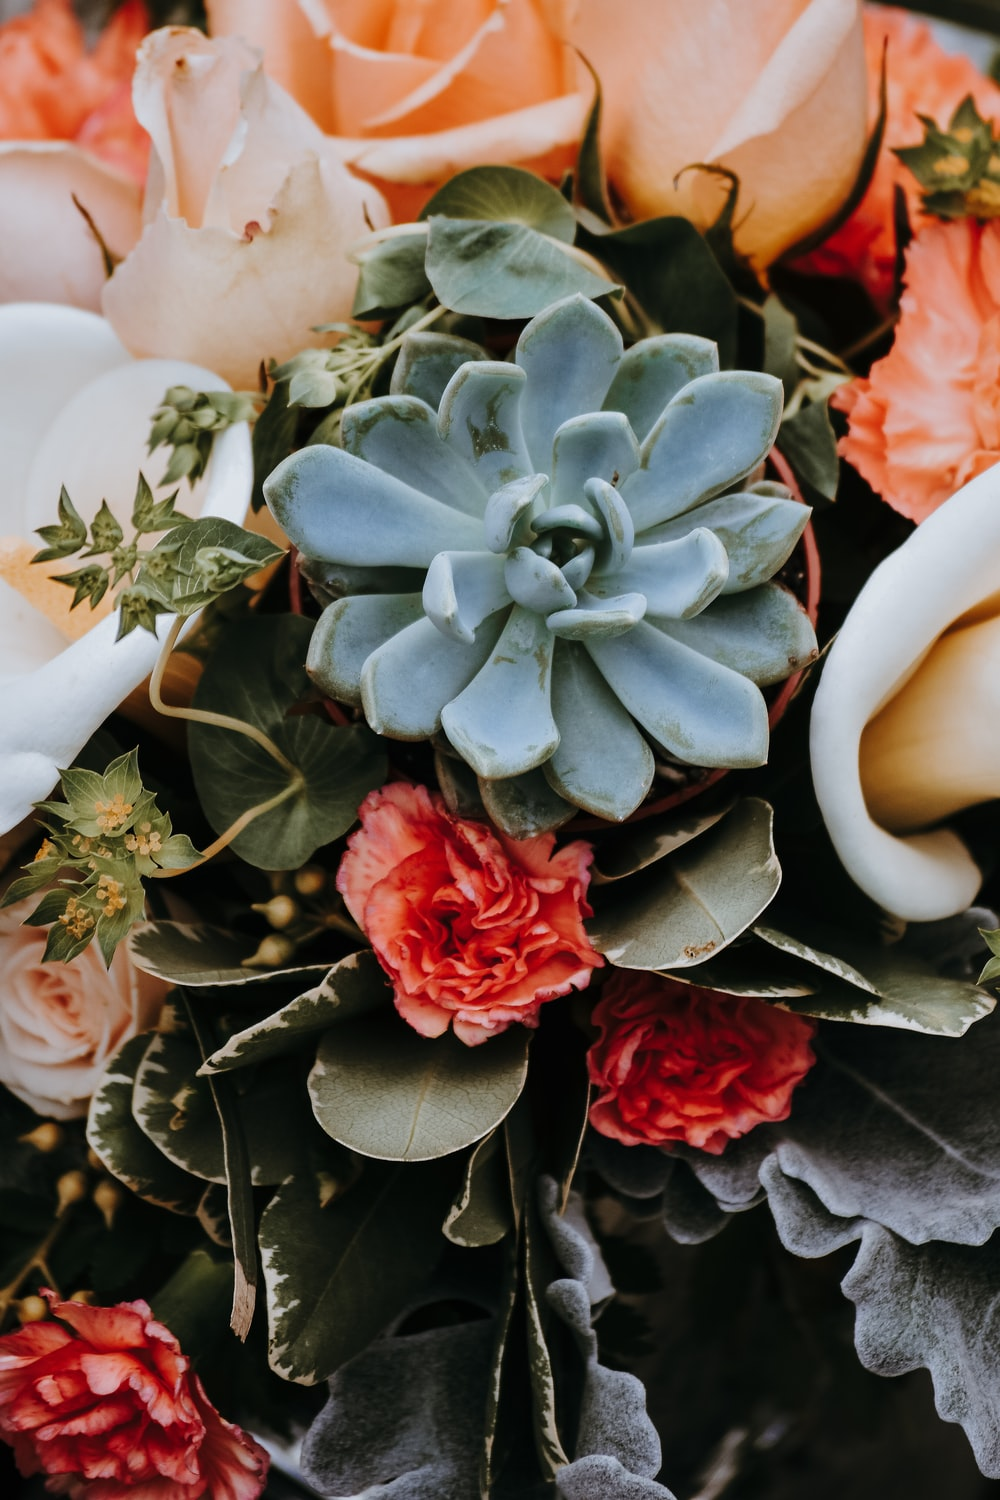 Plant Flower Leaves And Petal Hd Photo By Jacalyn Beales